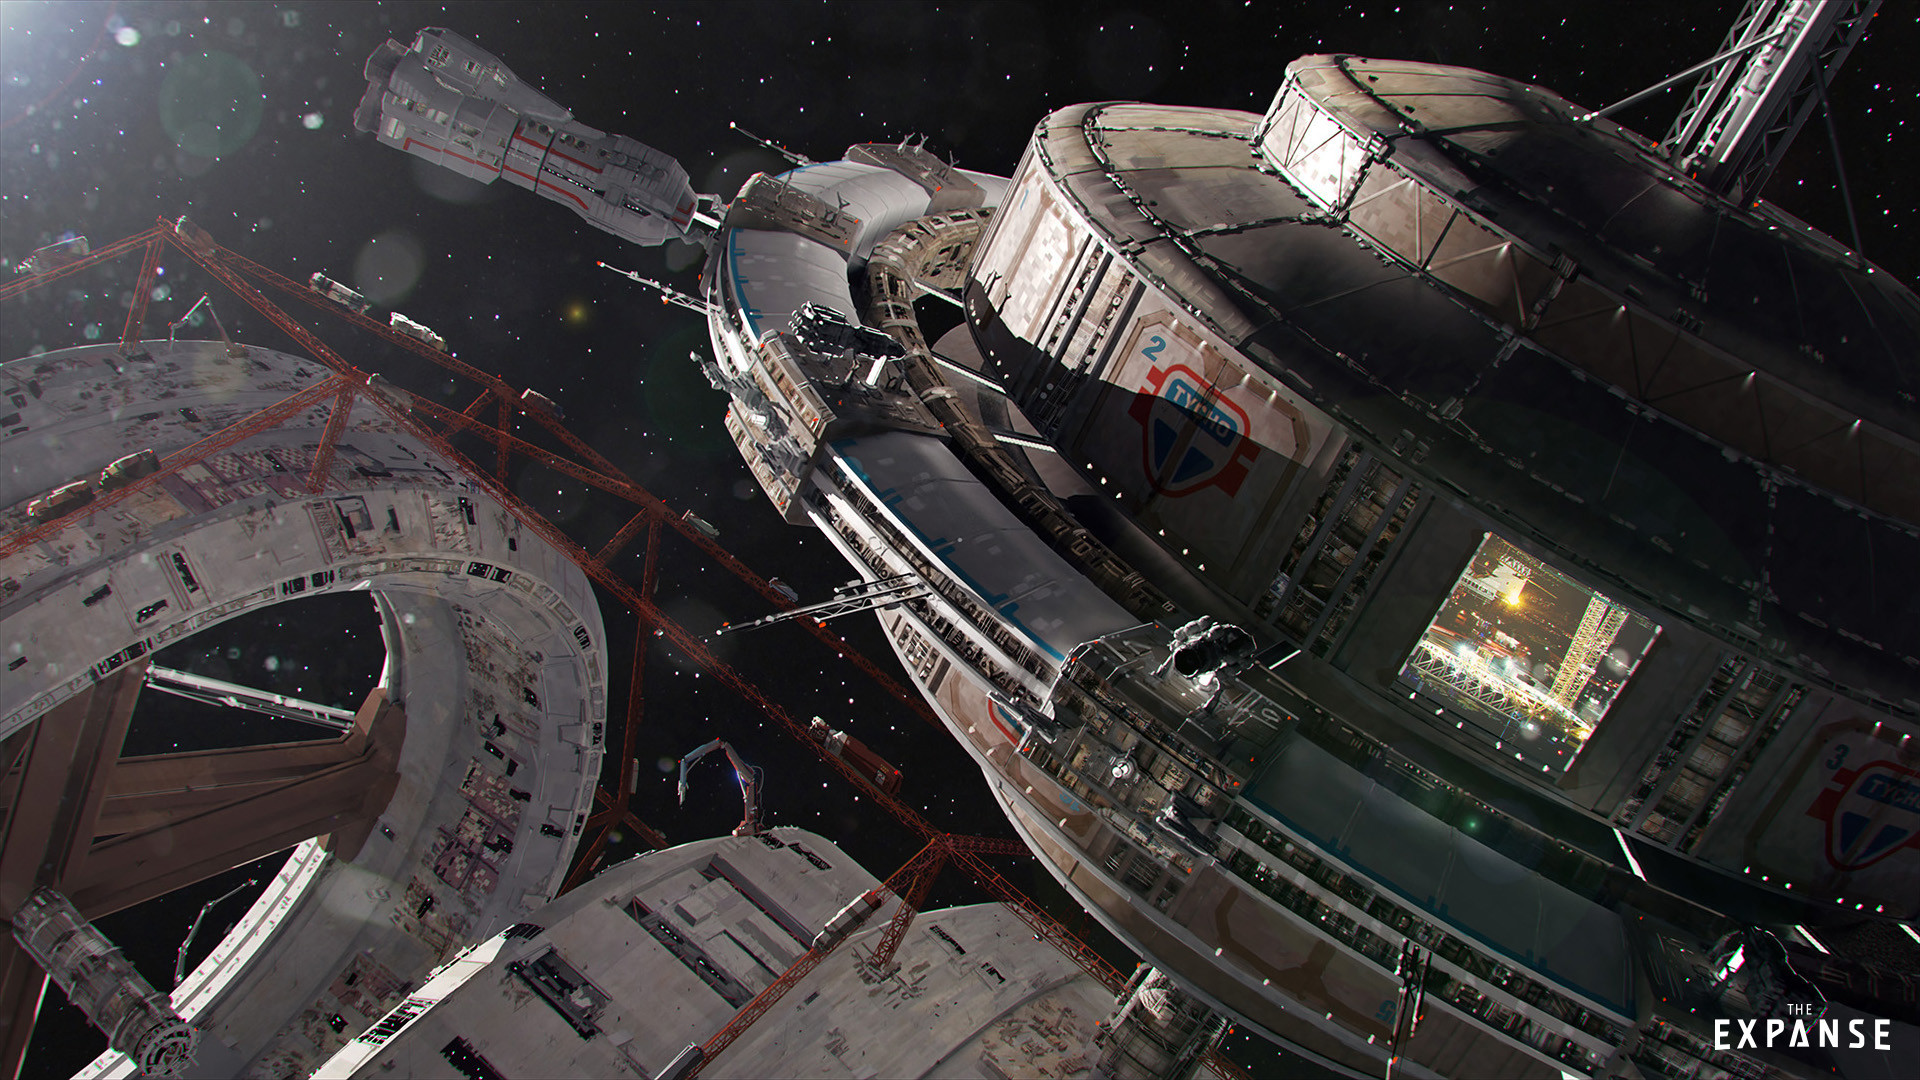 Awesome Sci Fi Art From Tim Warnock Concept Artist